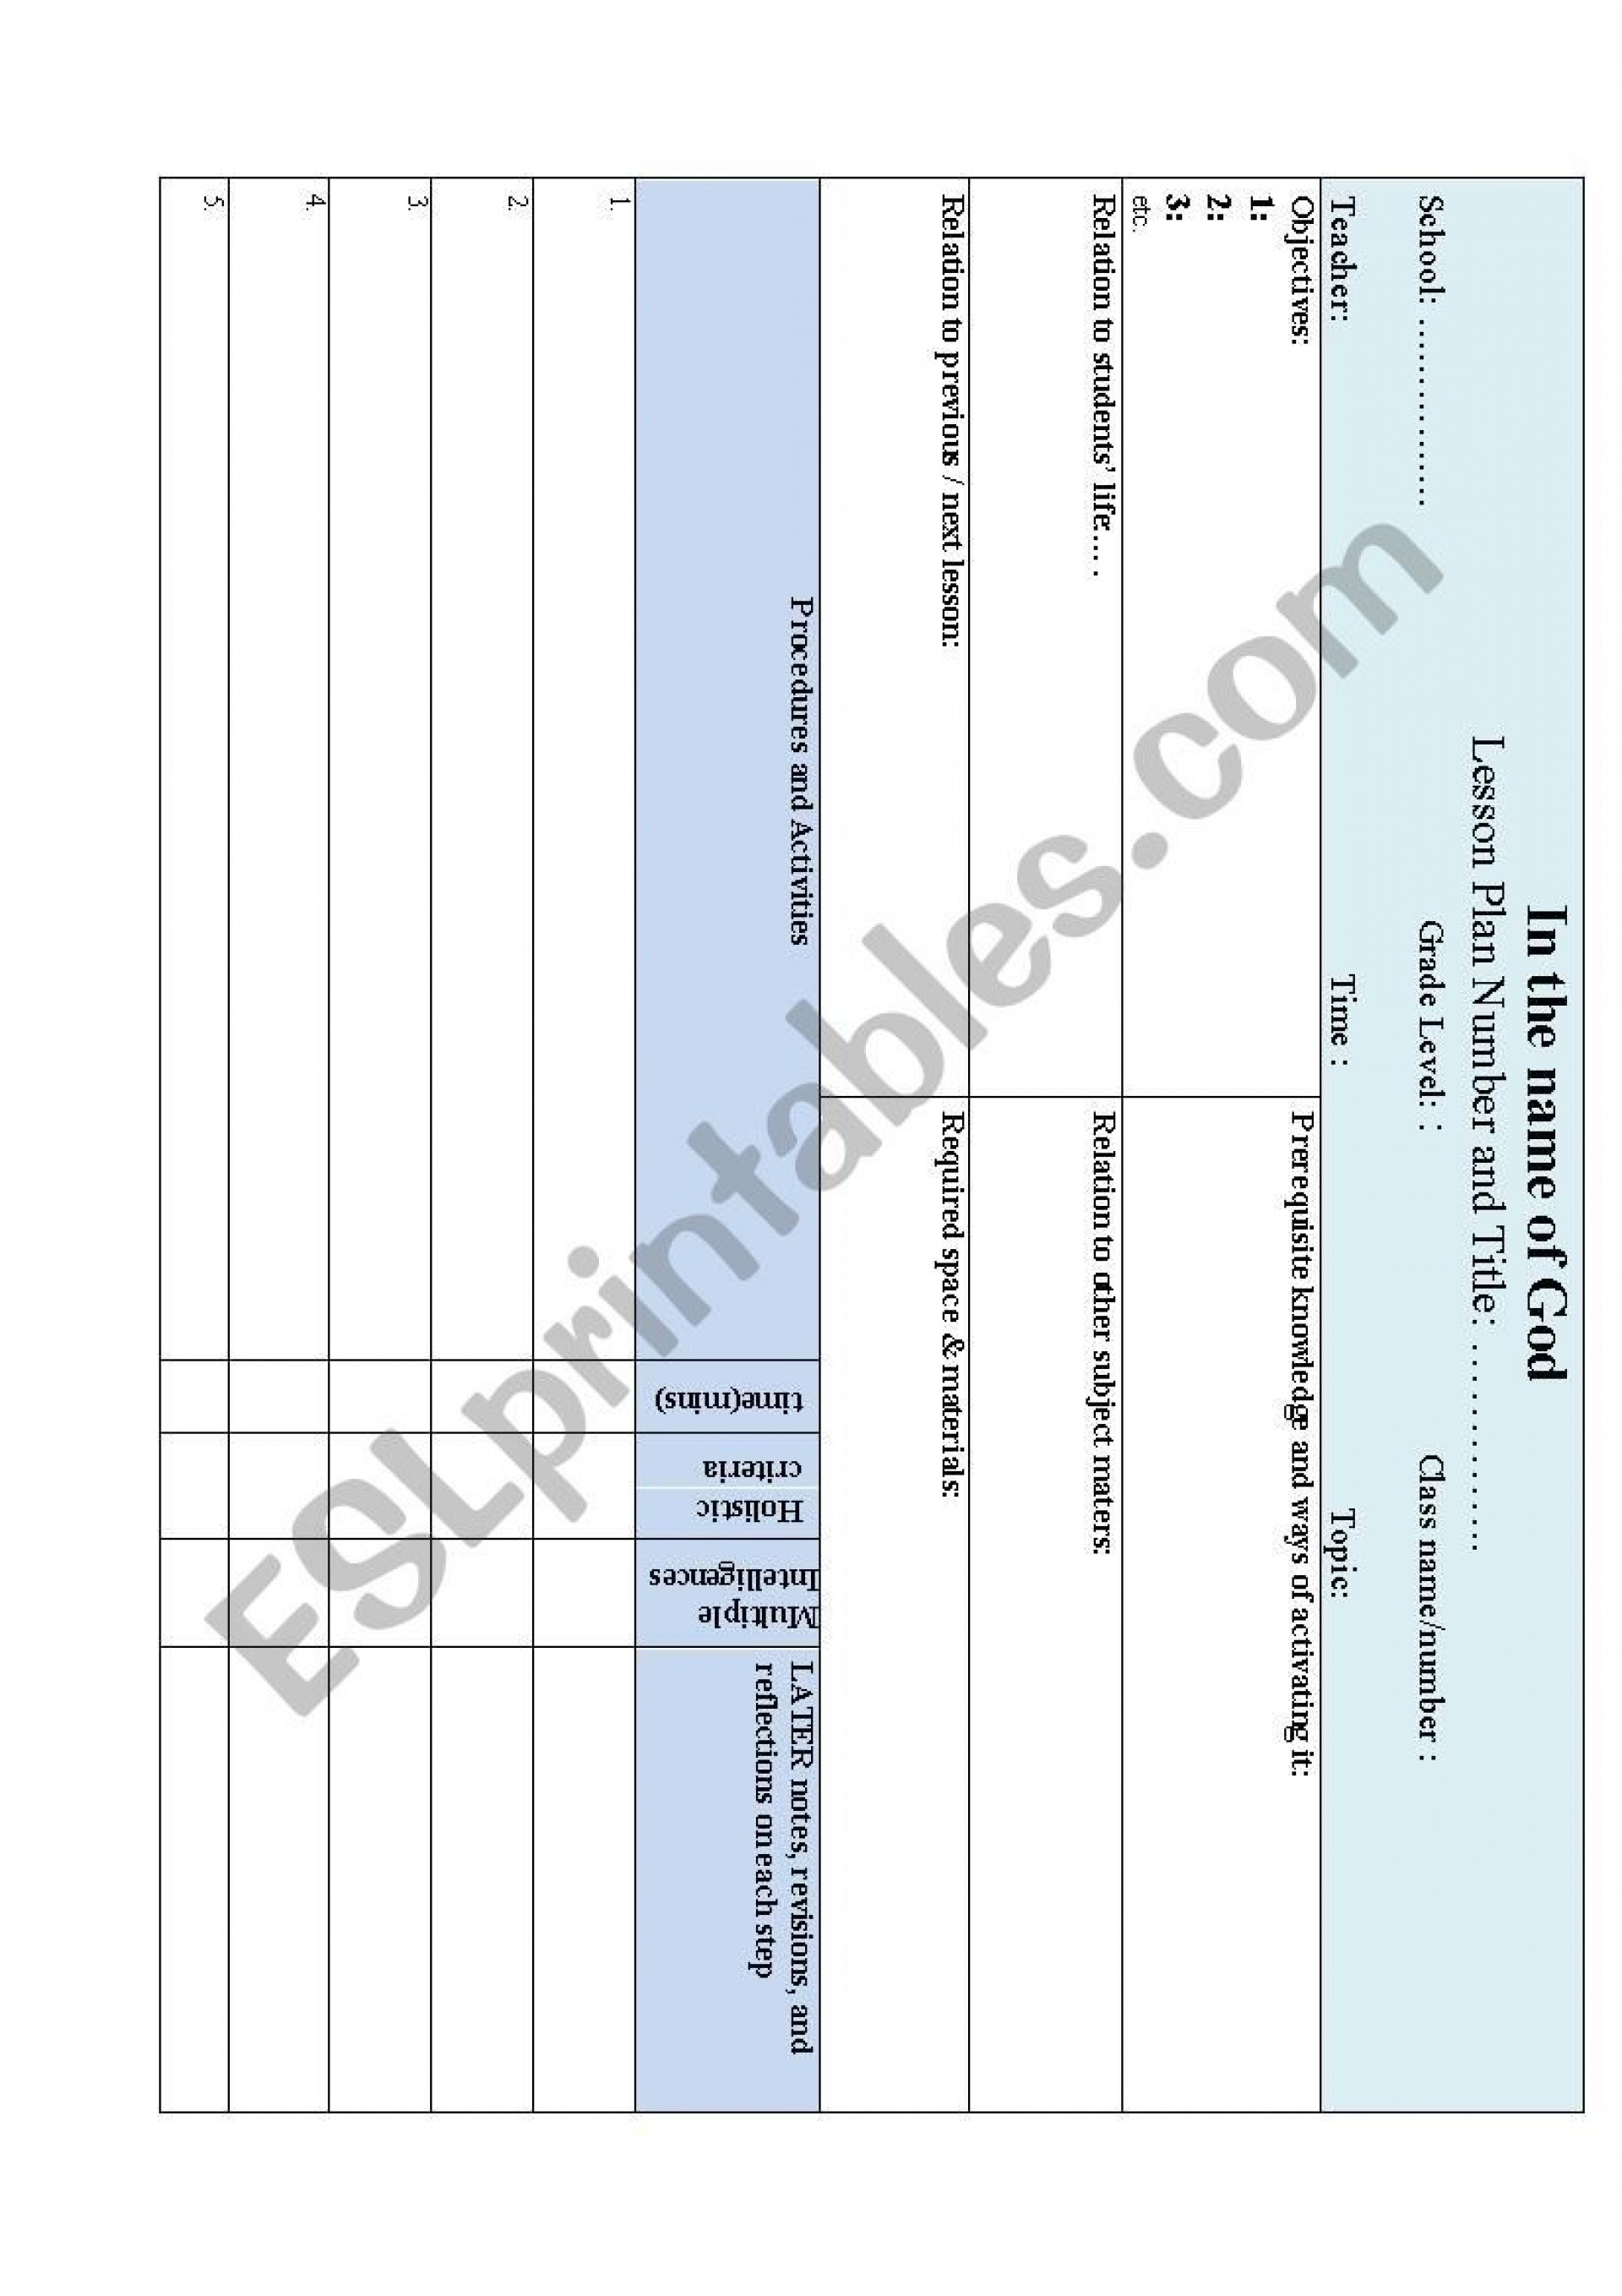 002 Wonderful Unit Lesson Plan Template Design  Word Thematic Example Pdf1920